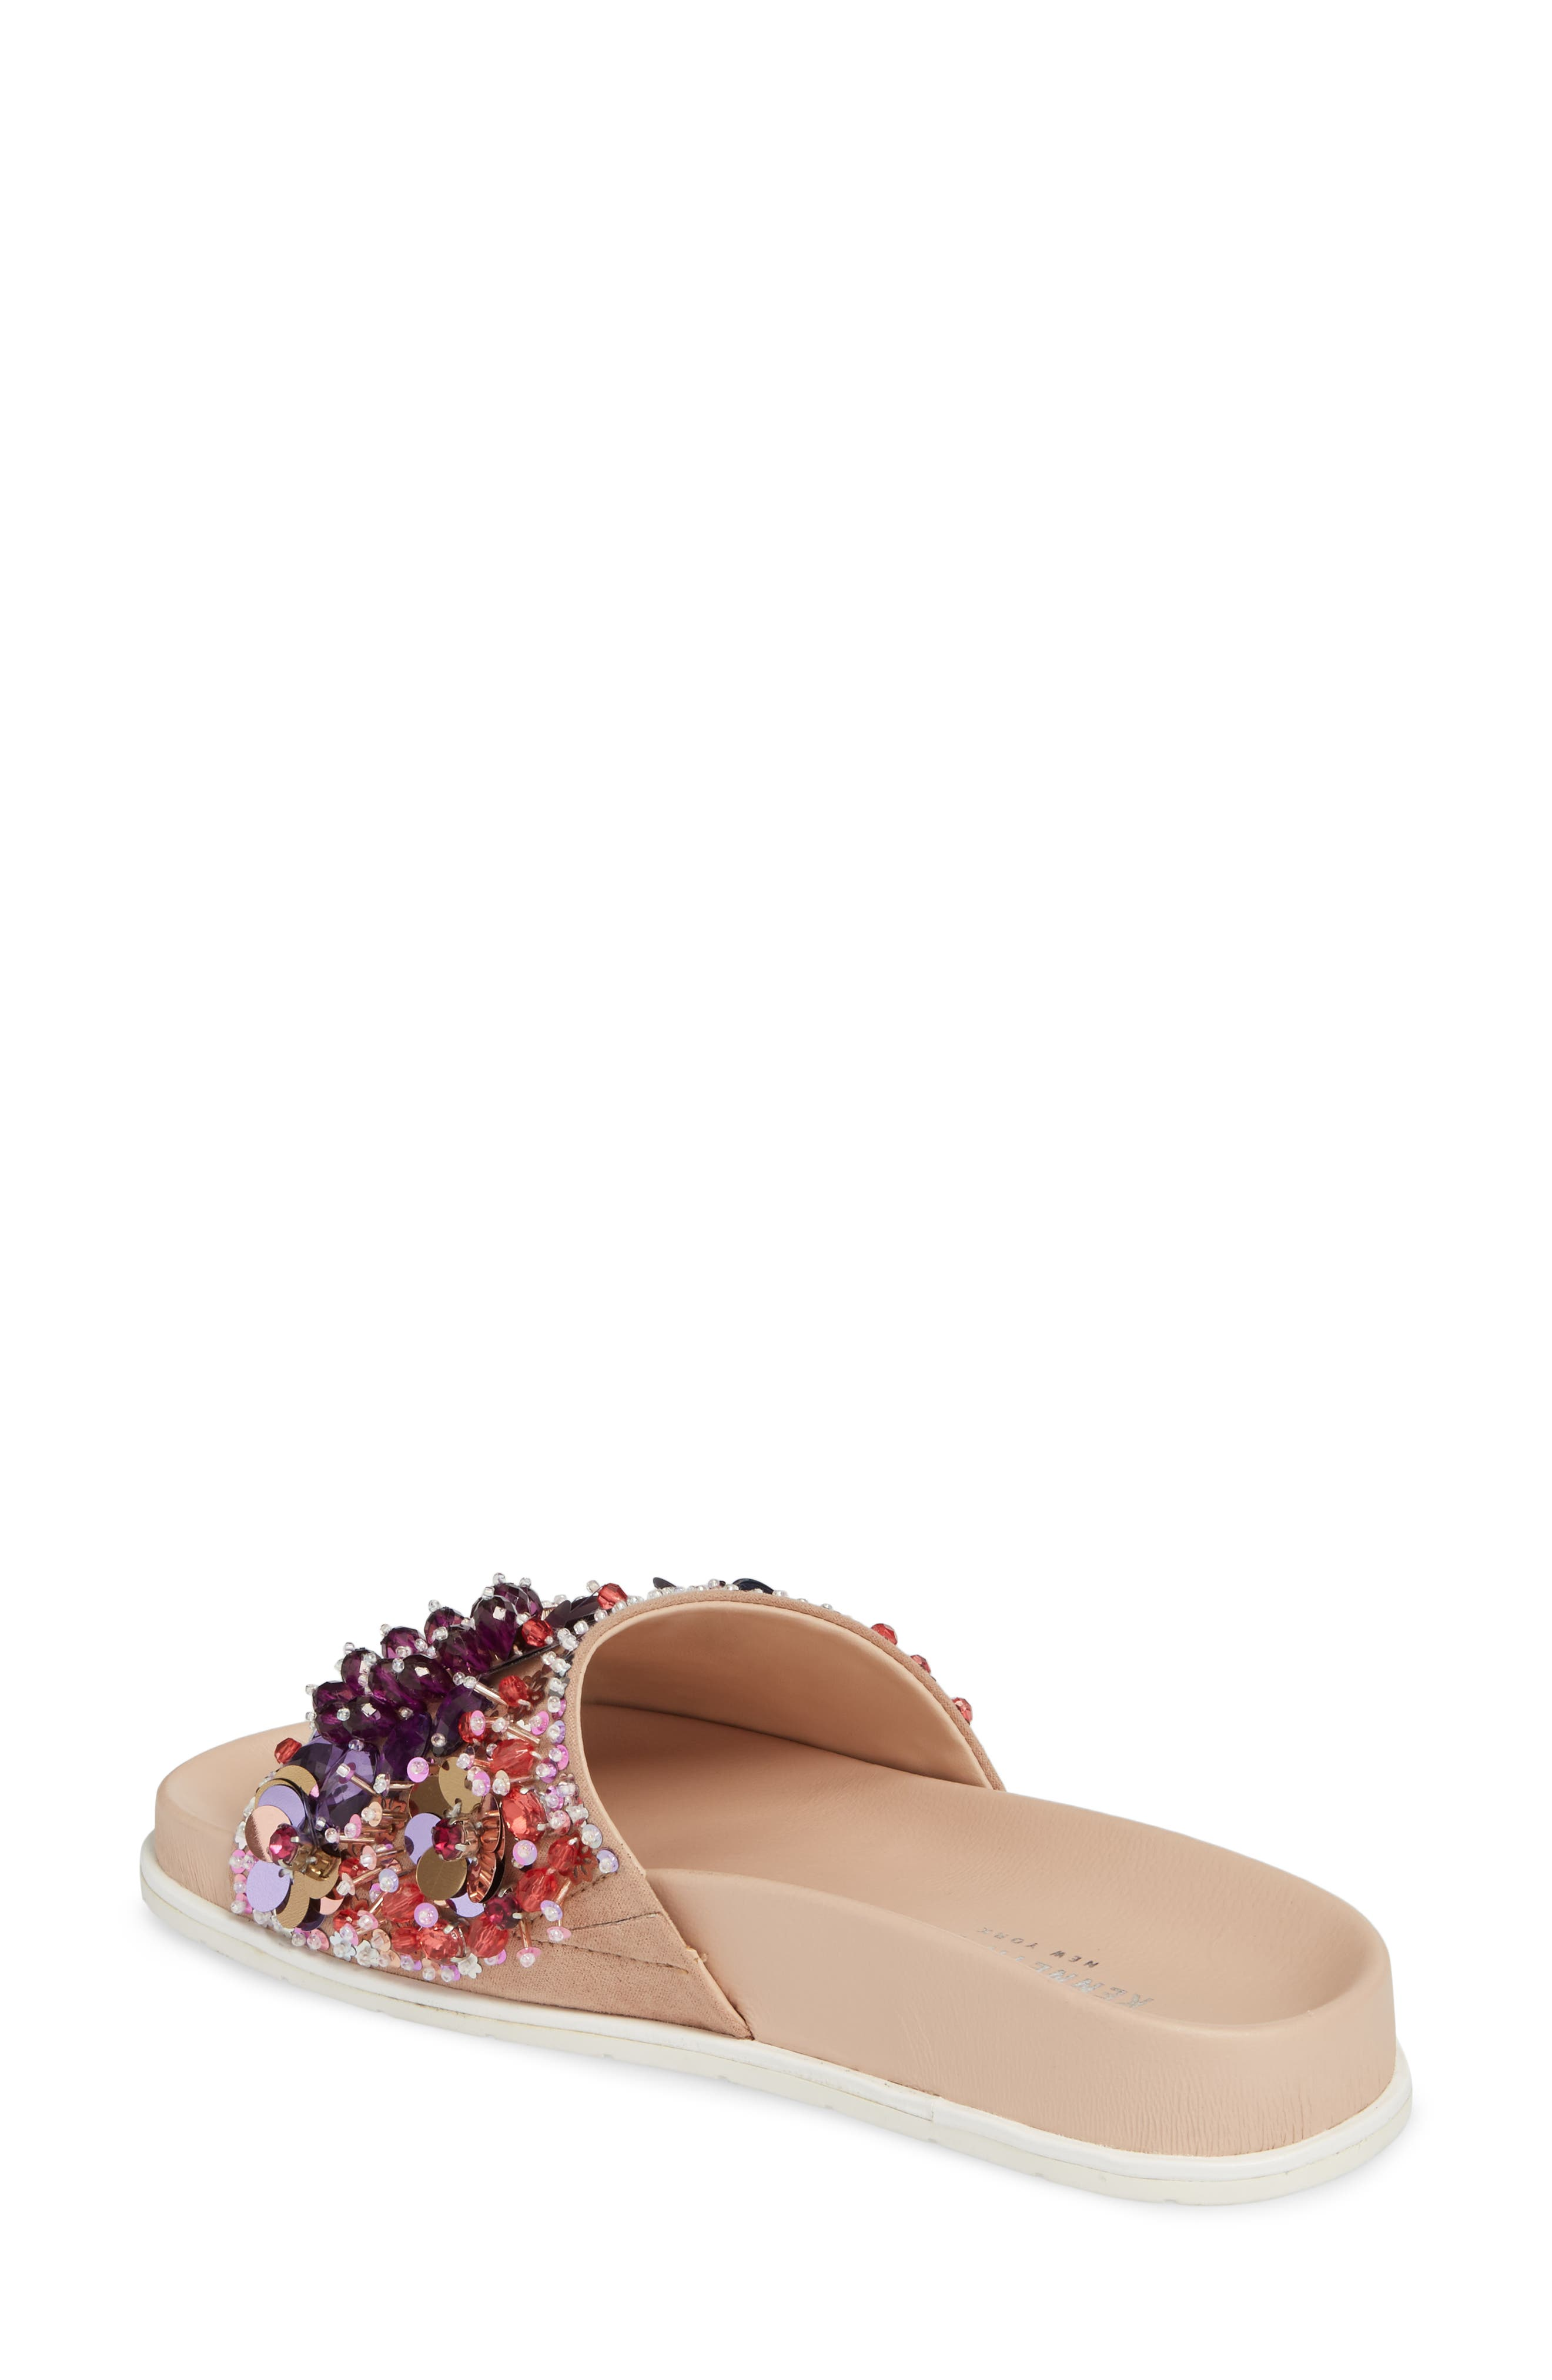 Alternate Image 2  - Kenneth Cole New York Xenia Sequin Embellished Sandal (Women)